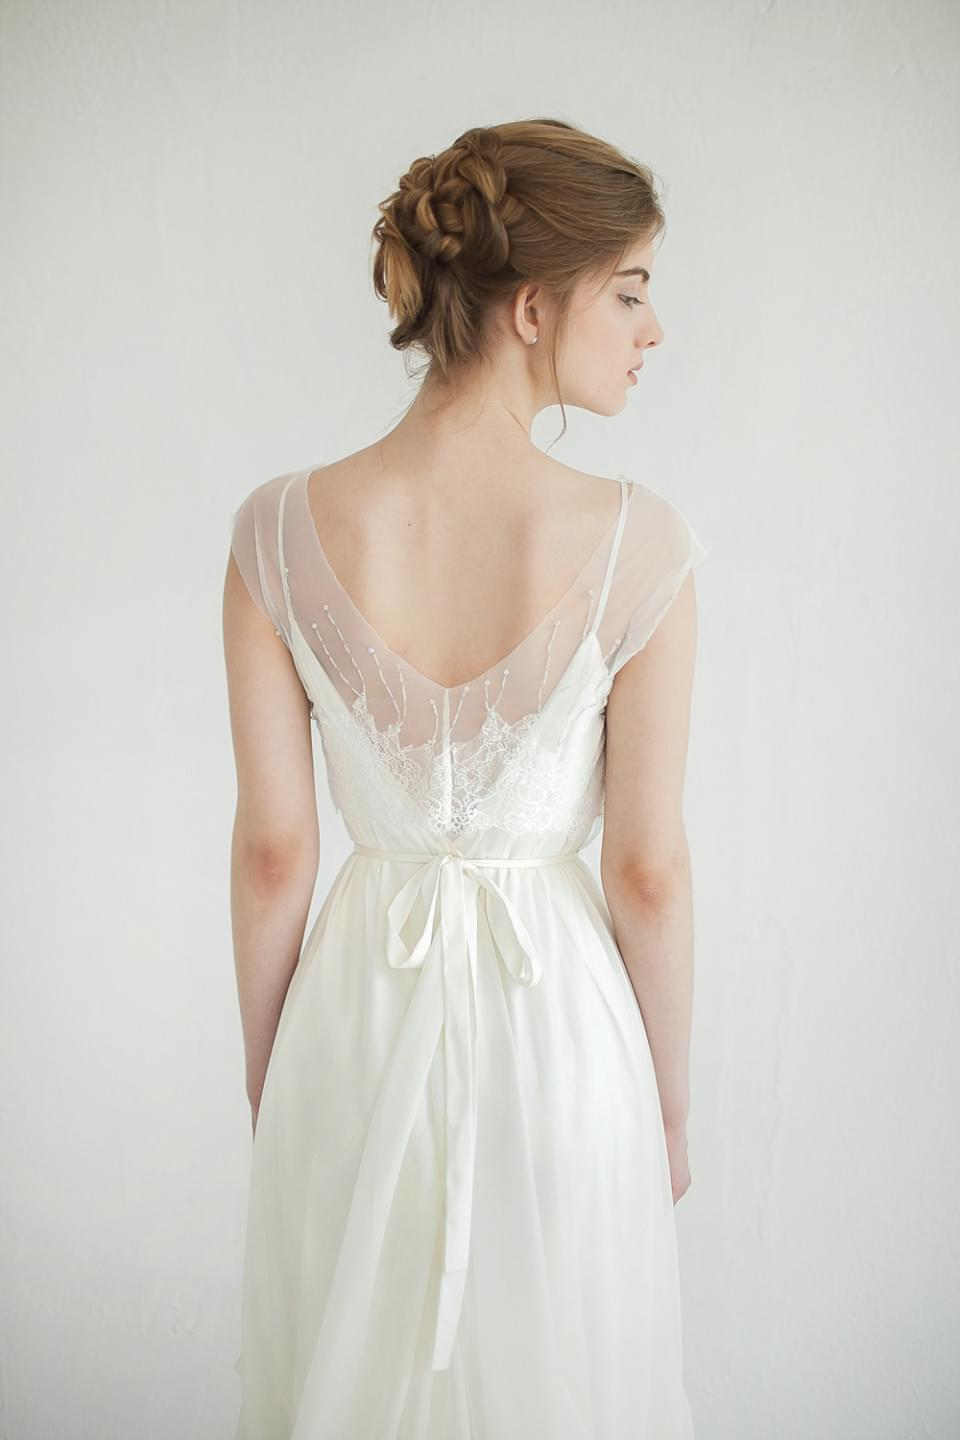 Ca'RouselBridalGown_Lili_04